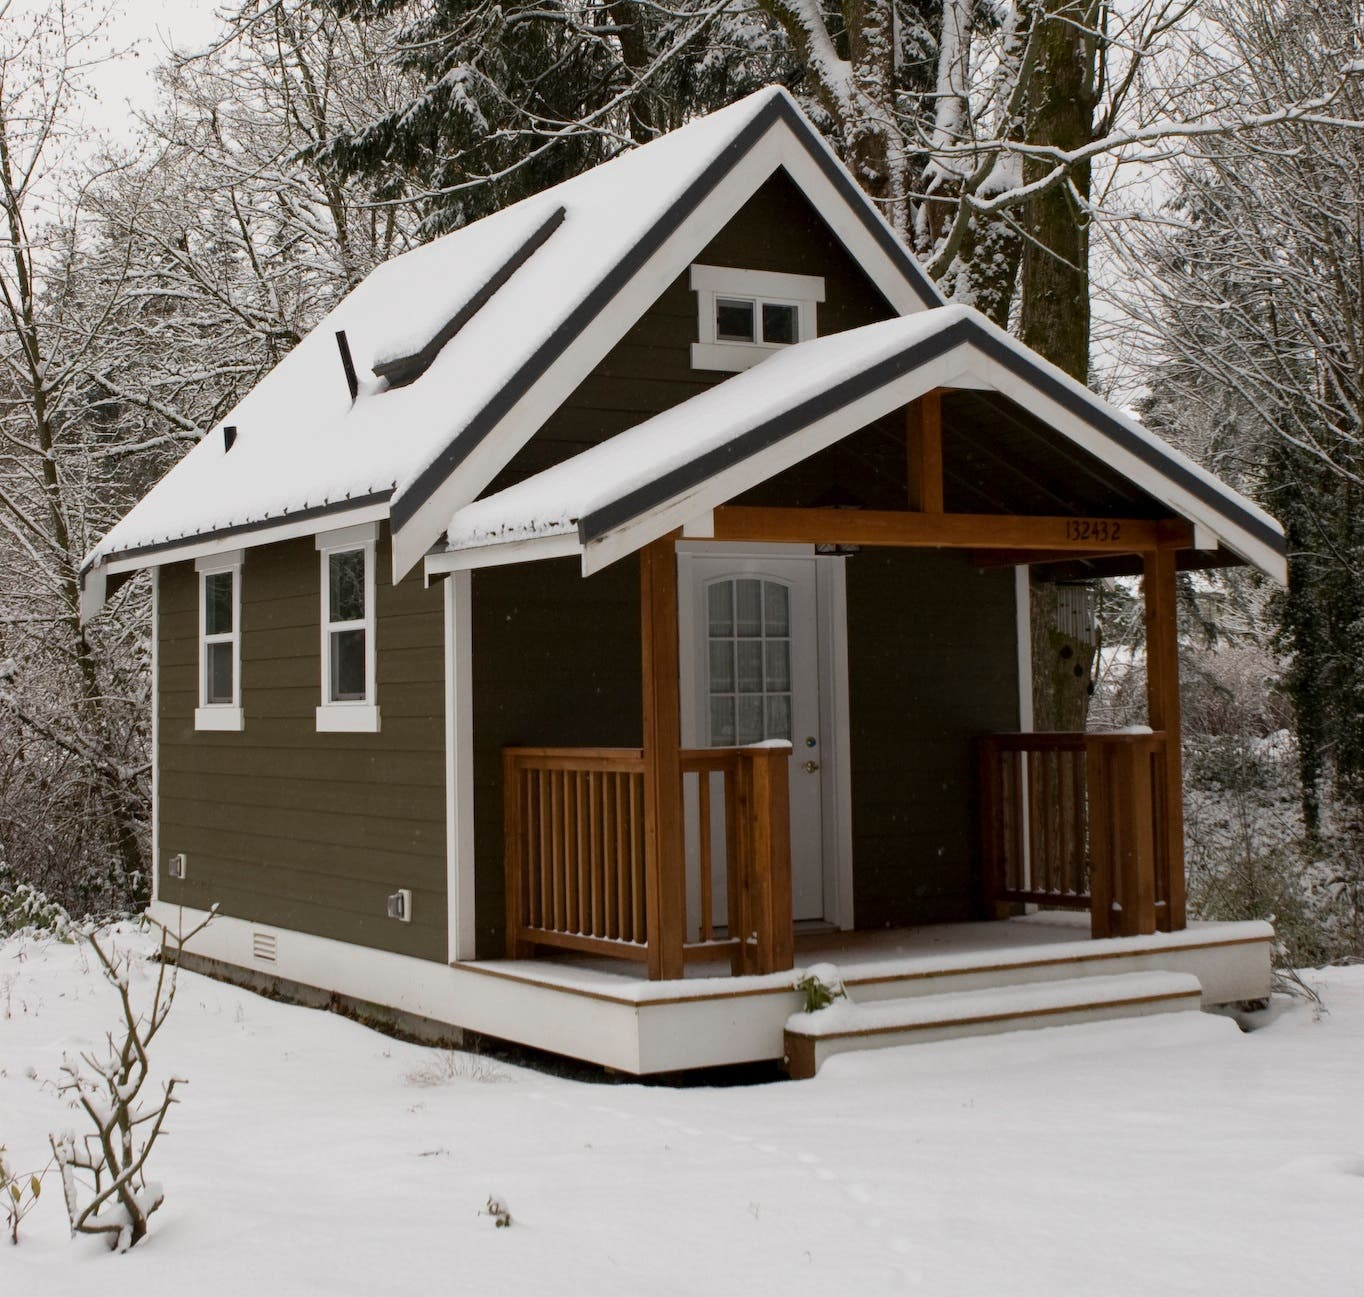 tiny house articles - Home Design Articles